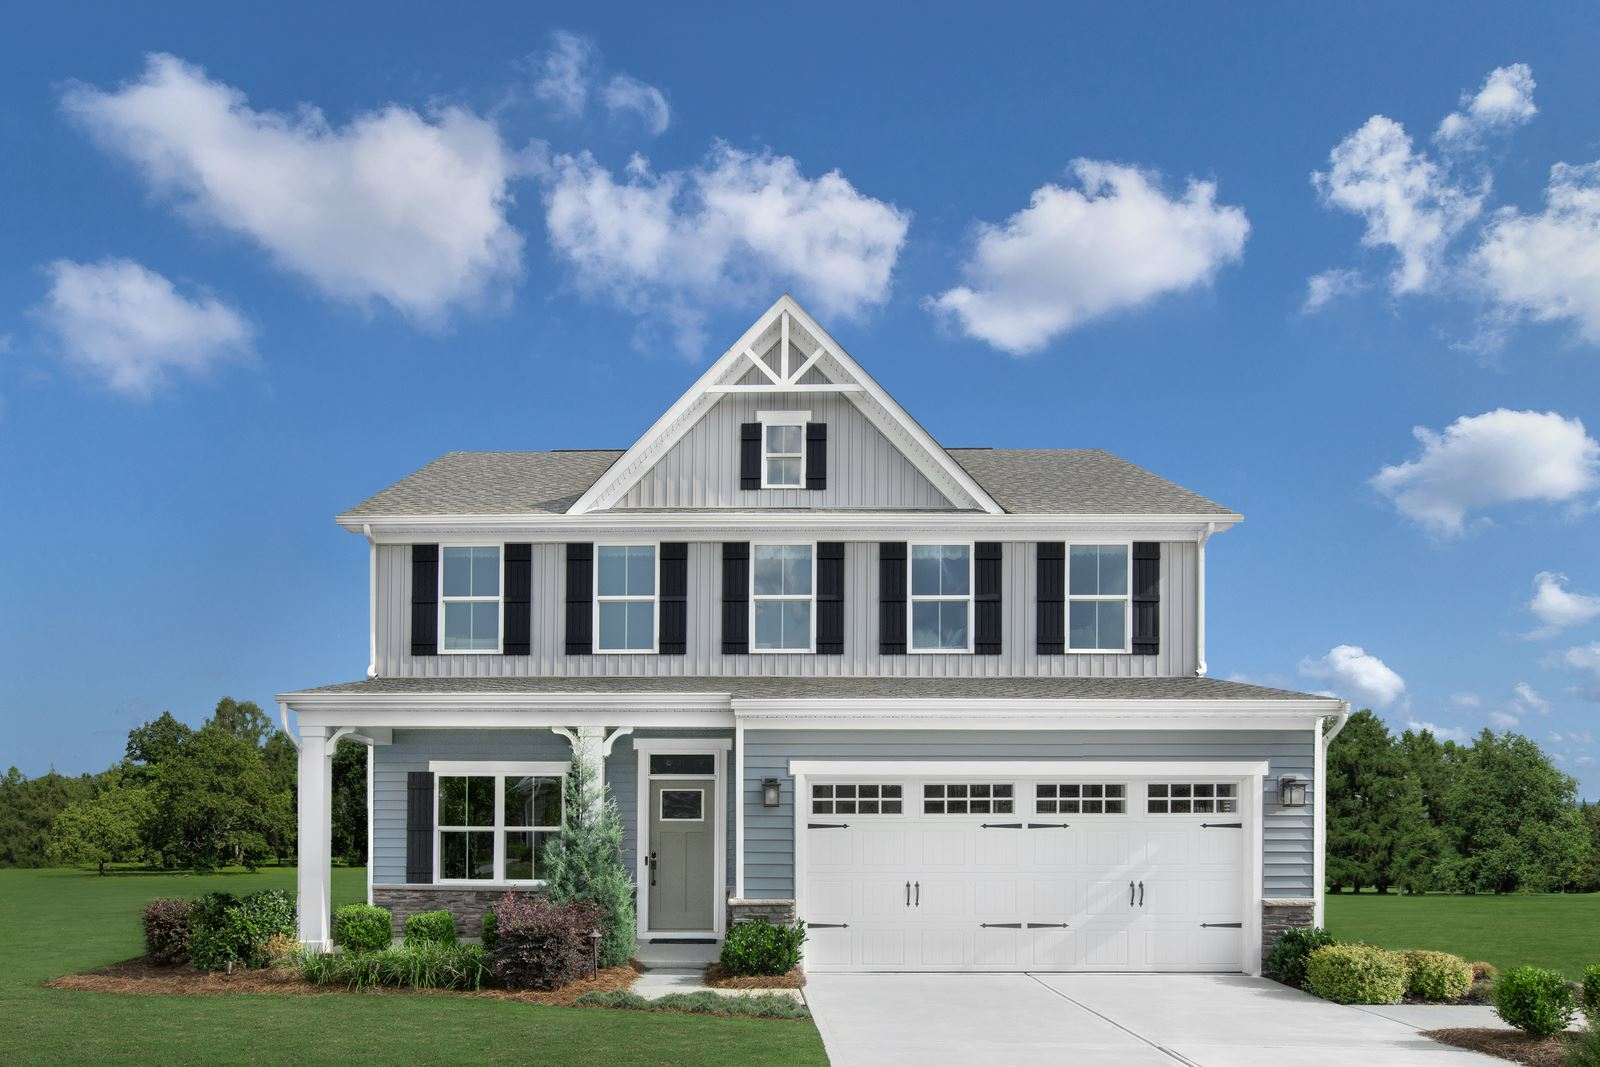 Landsdale In Monrovia Md Prices Plans Availability